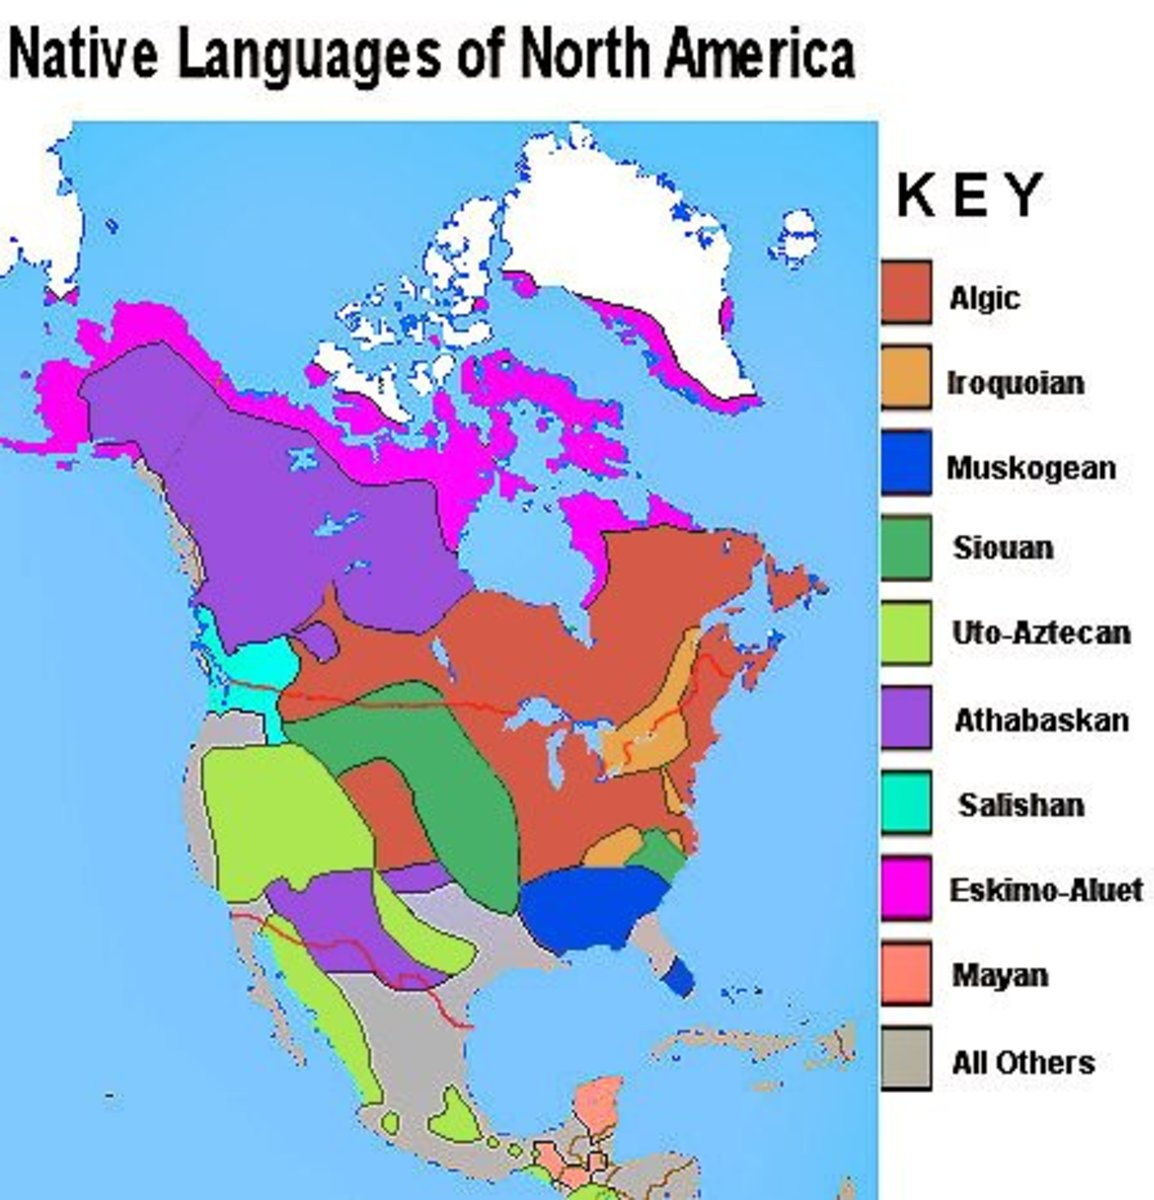 Major native language groups of America include the Algonquians (a subfamily of Algic), the Iroquoians and the Siouans, and others which all feature prominently in the naming of the 50 American states